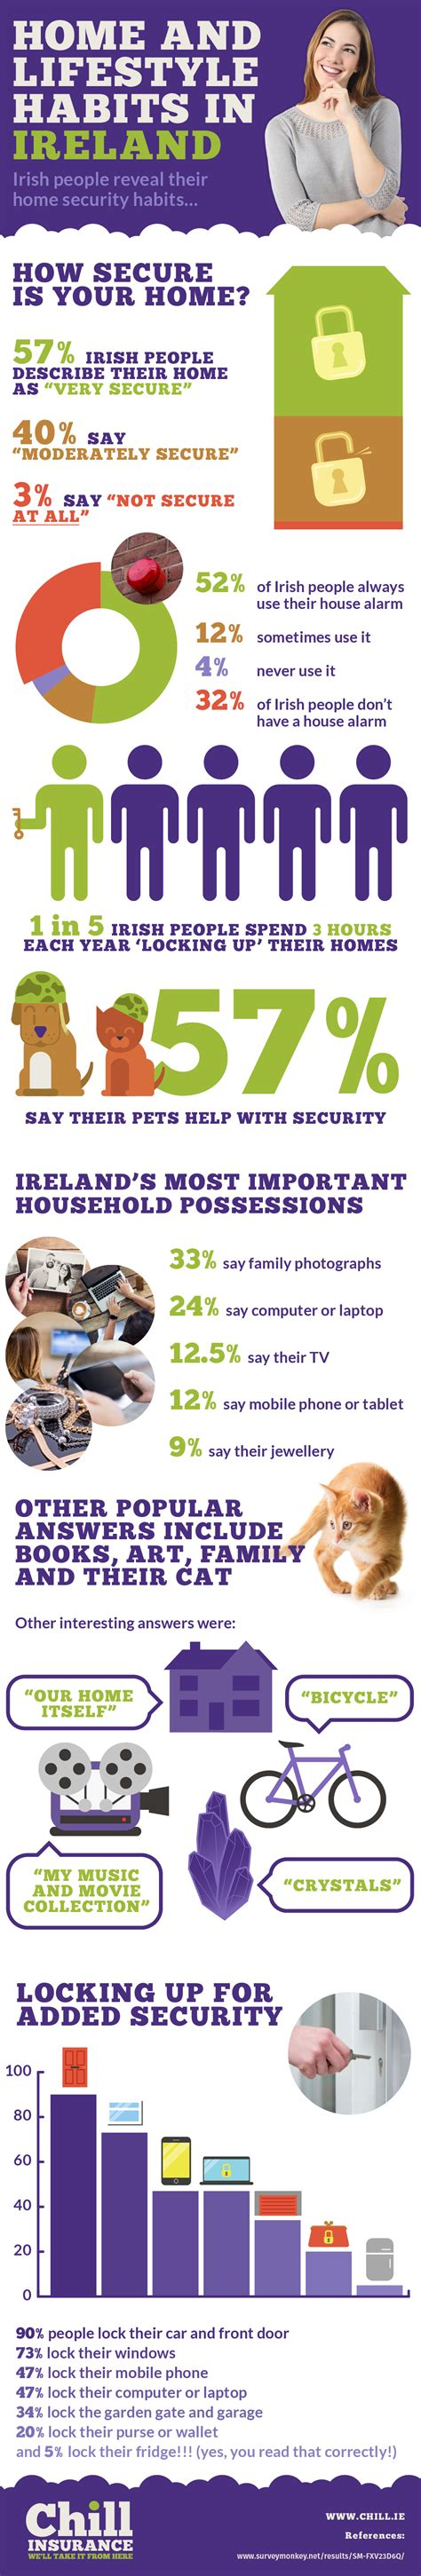 home security in ireland infographic stacey in the sticks